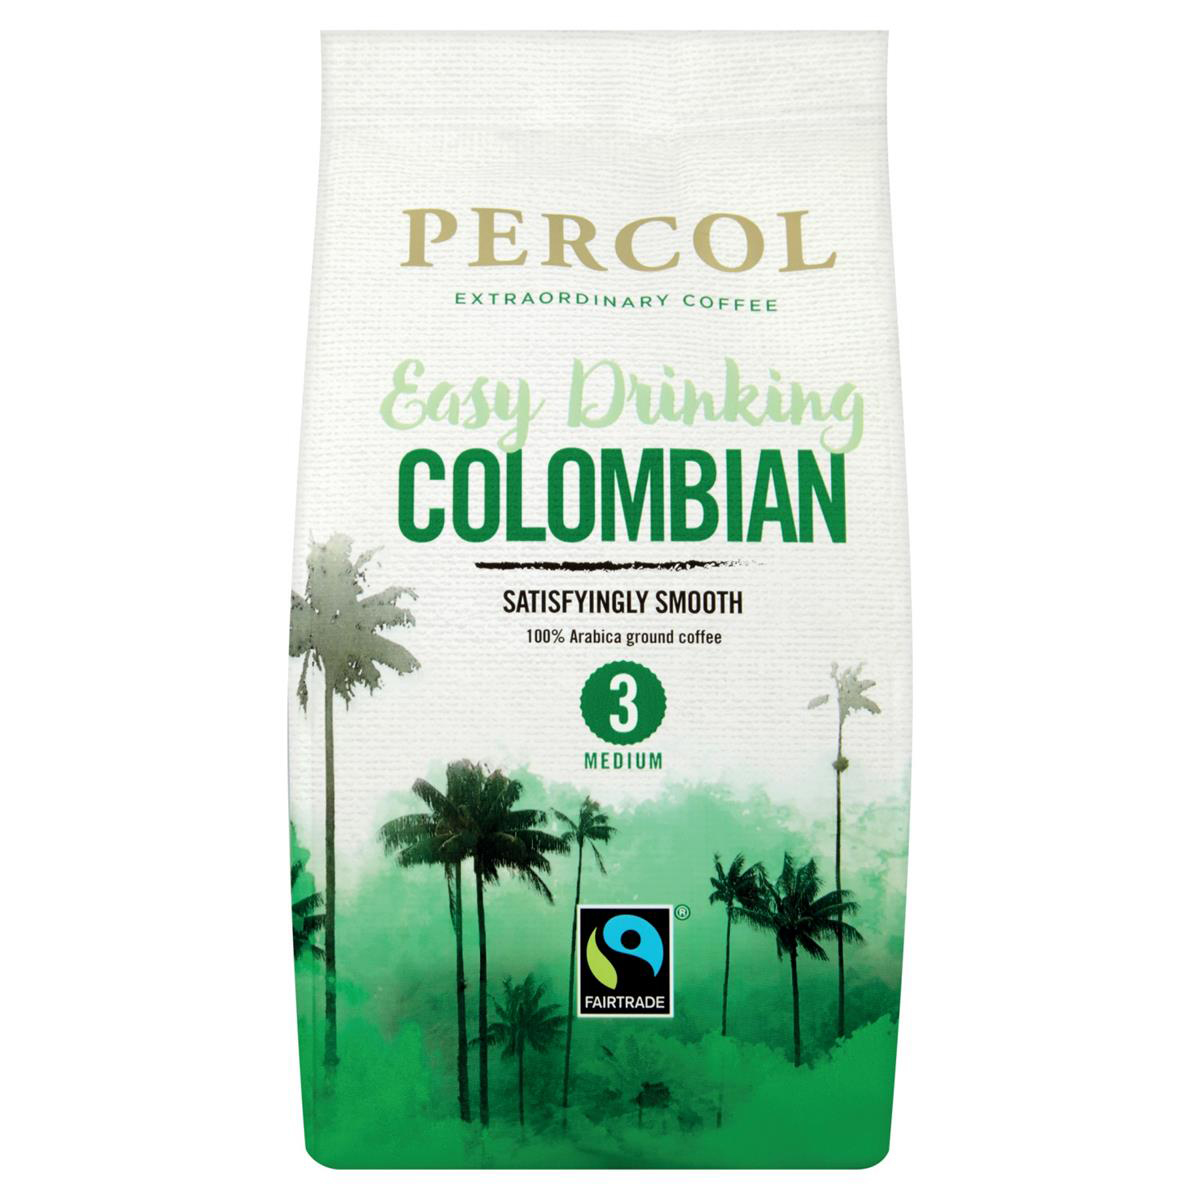 Coffee Percol Fairtrade Colombia Ground Coffee Medium Roasted 200g Ref 0403127